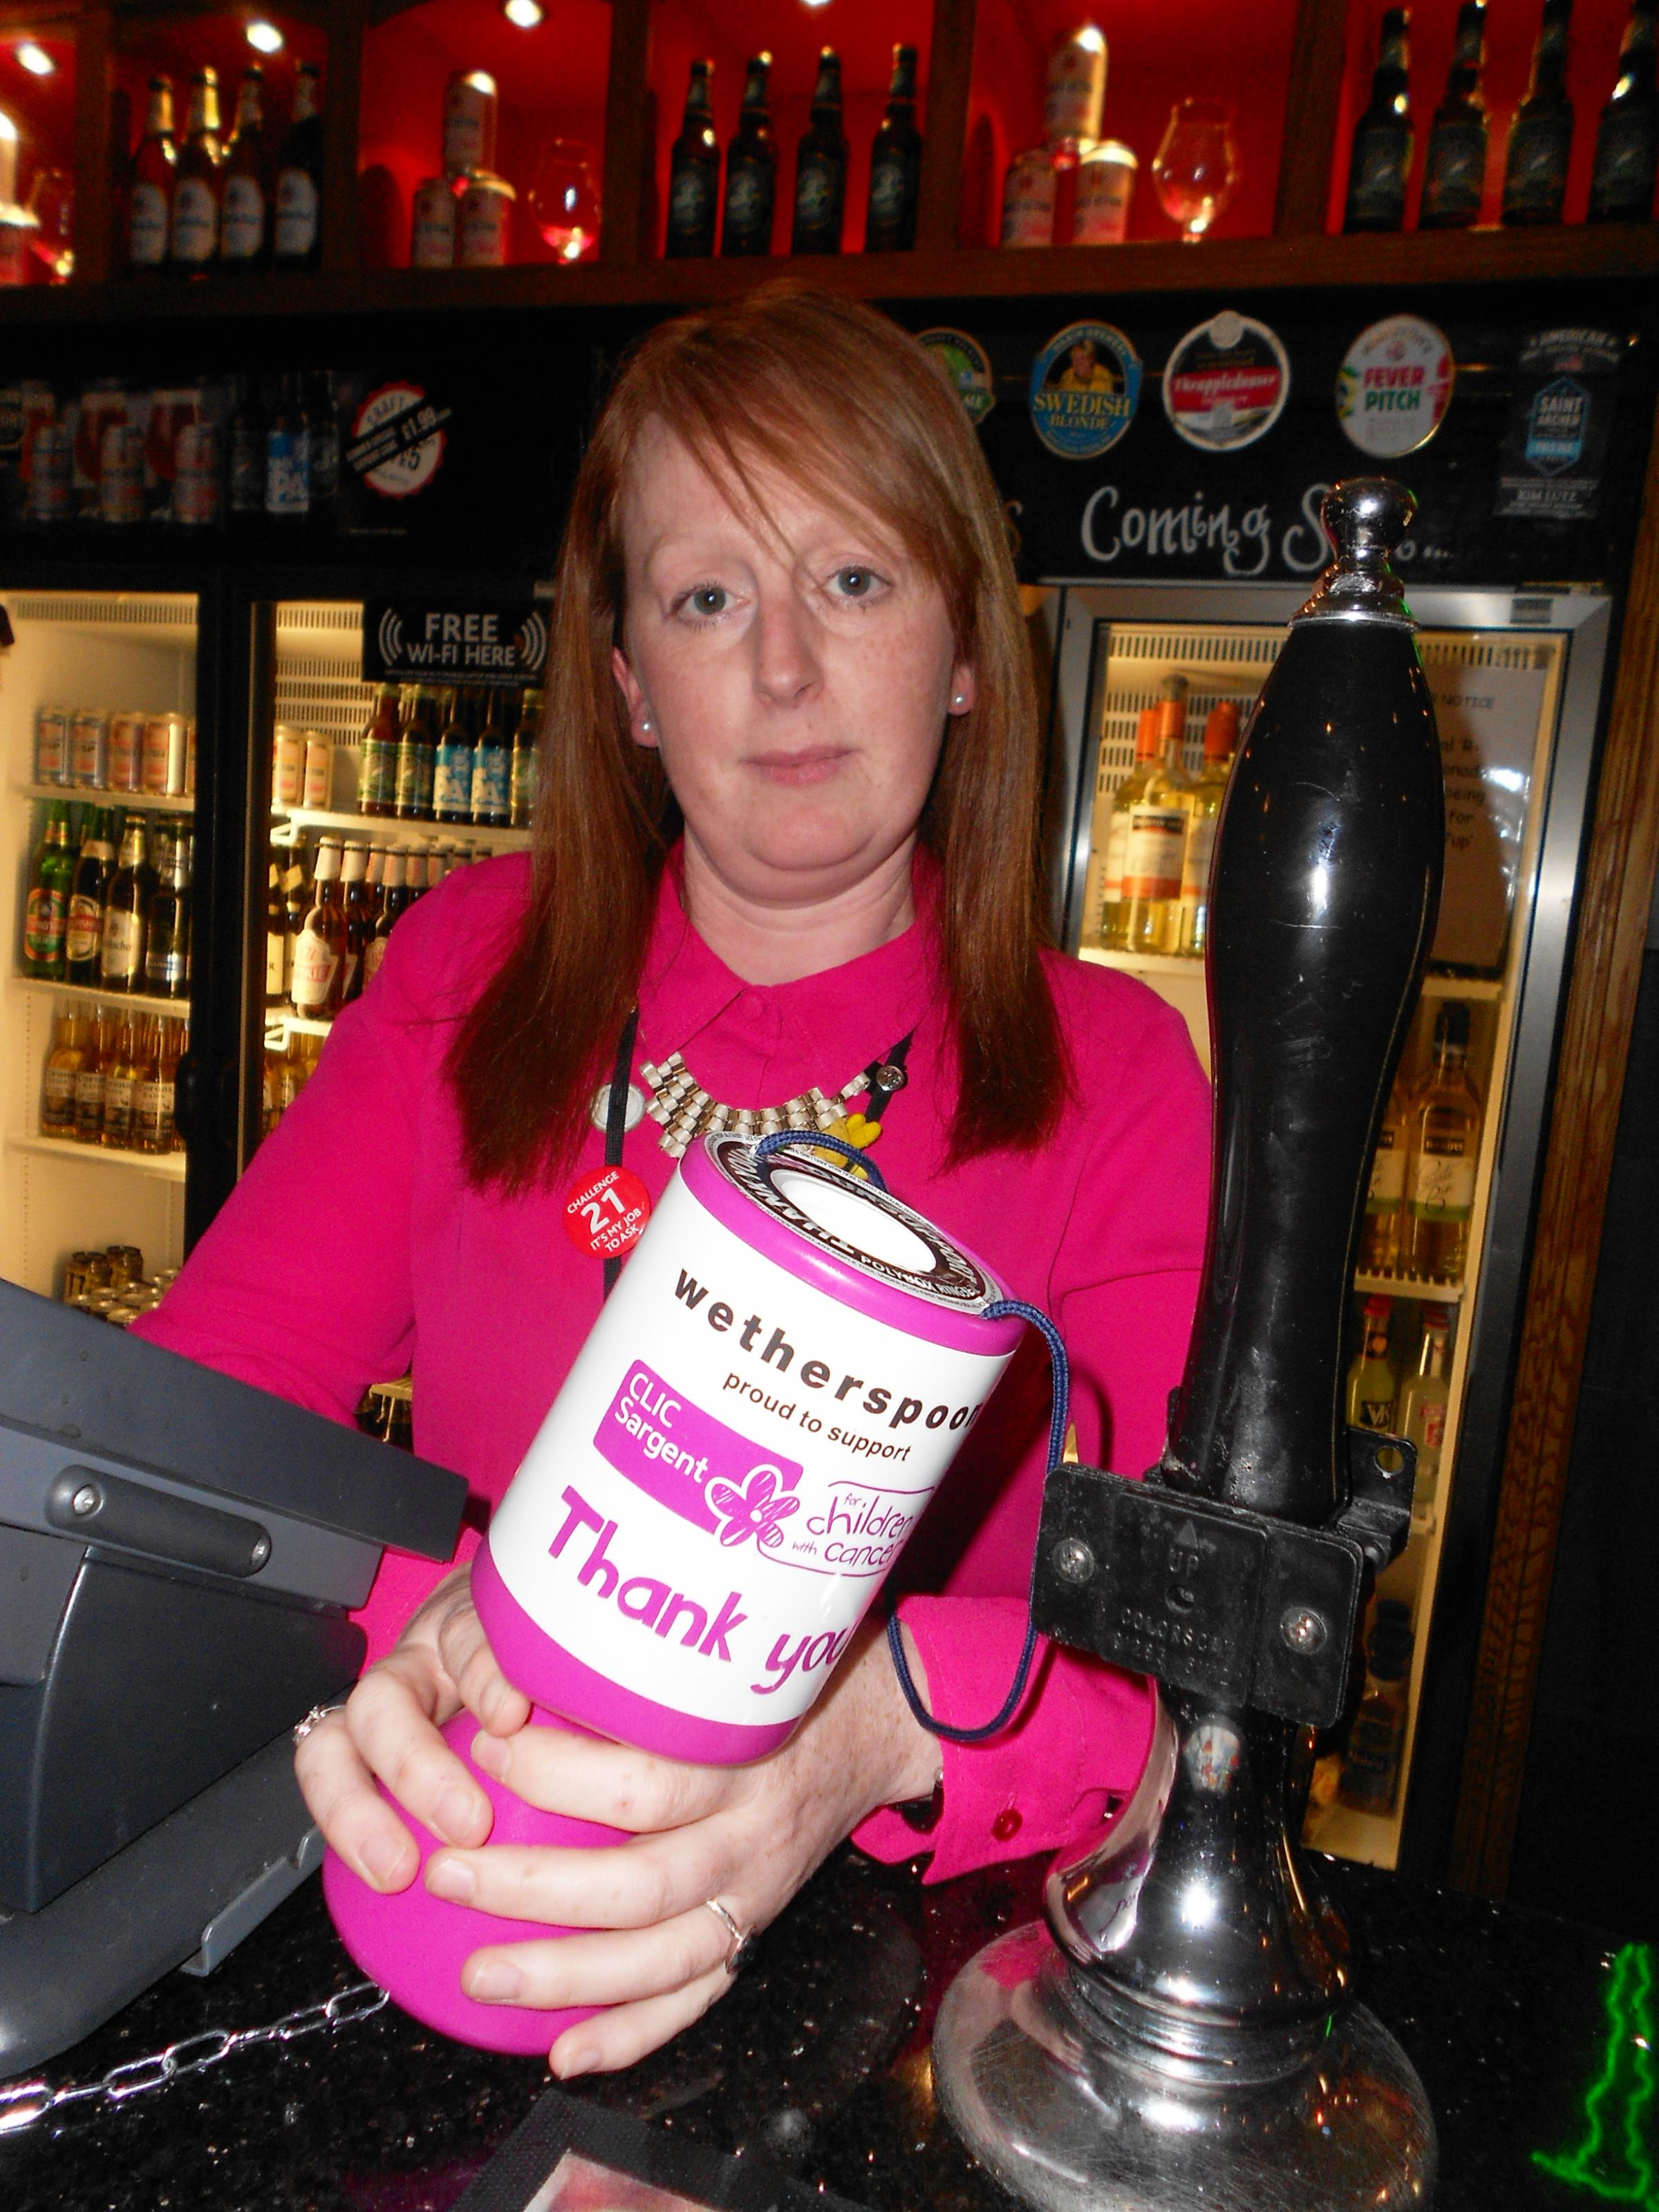 The manager of the pub Claire Heitzman was shocked by the theft of the three charity boxes after the generosity of her staff and customers